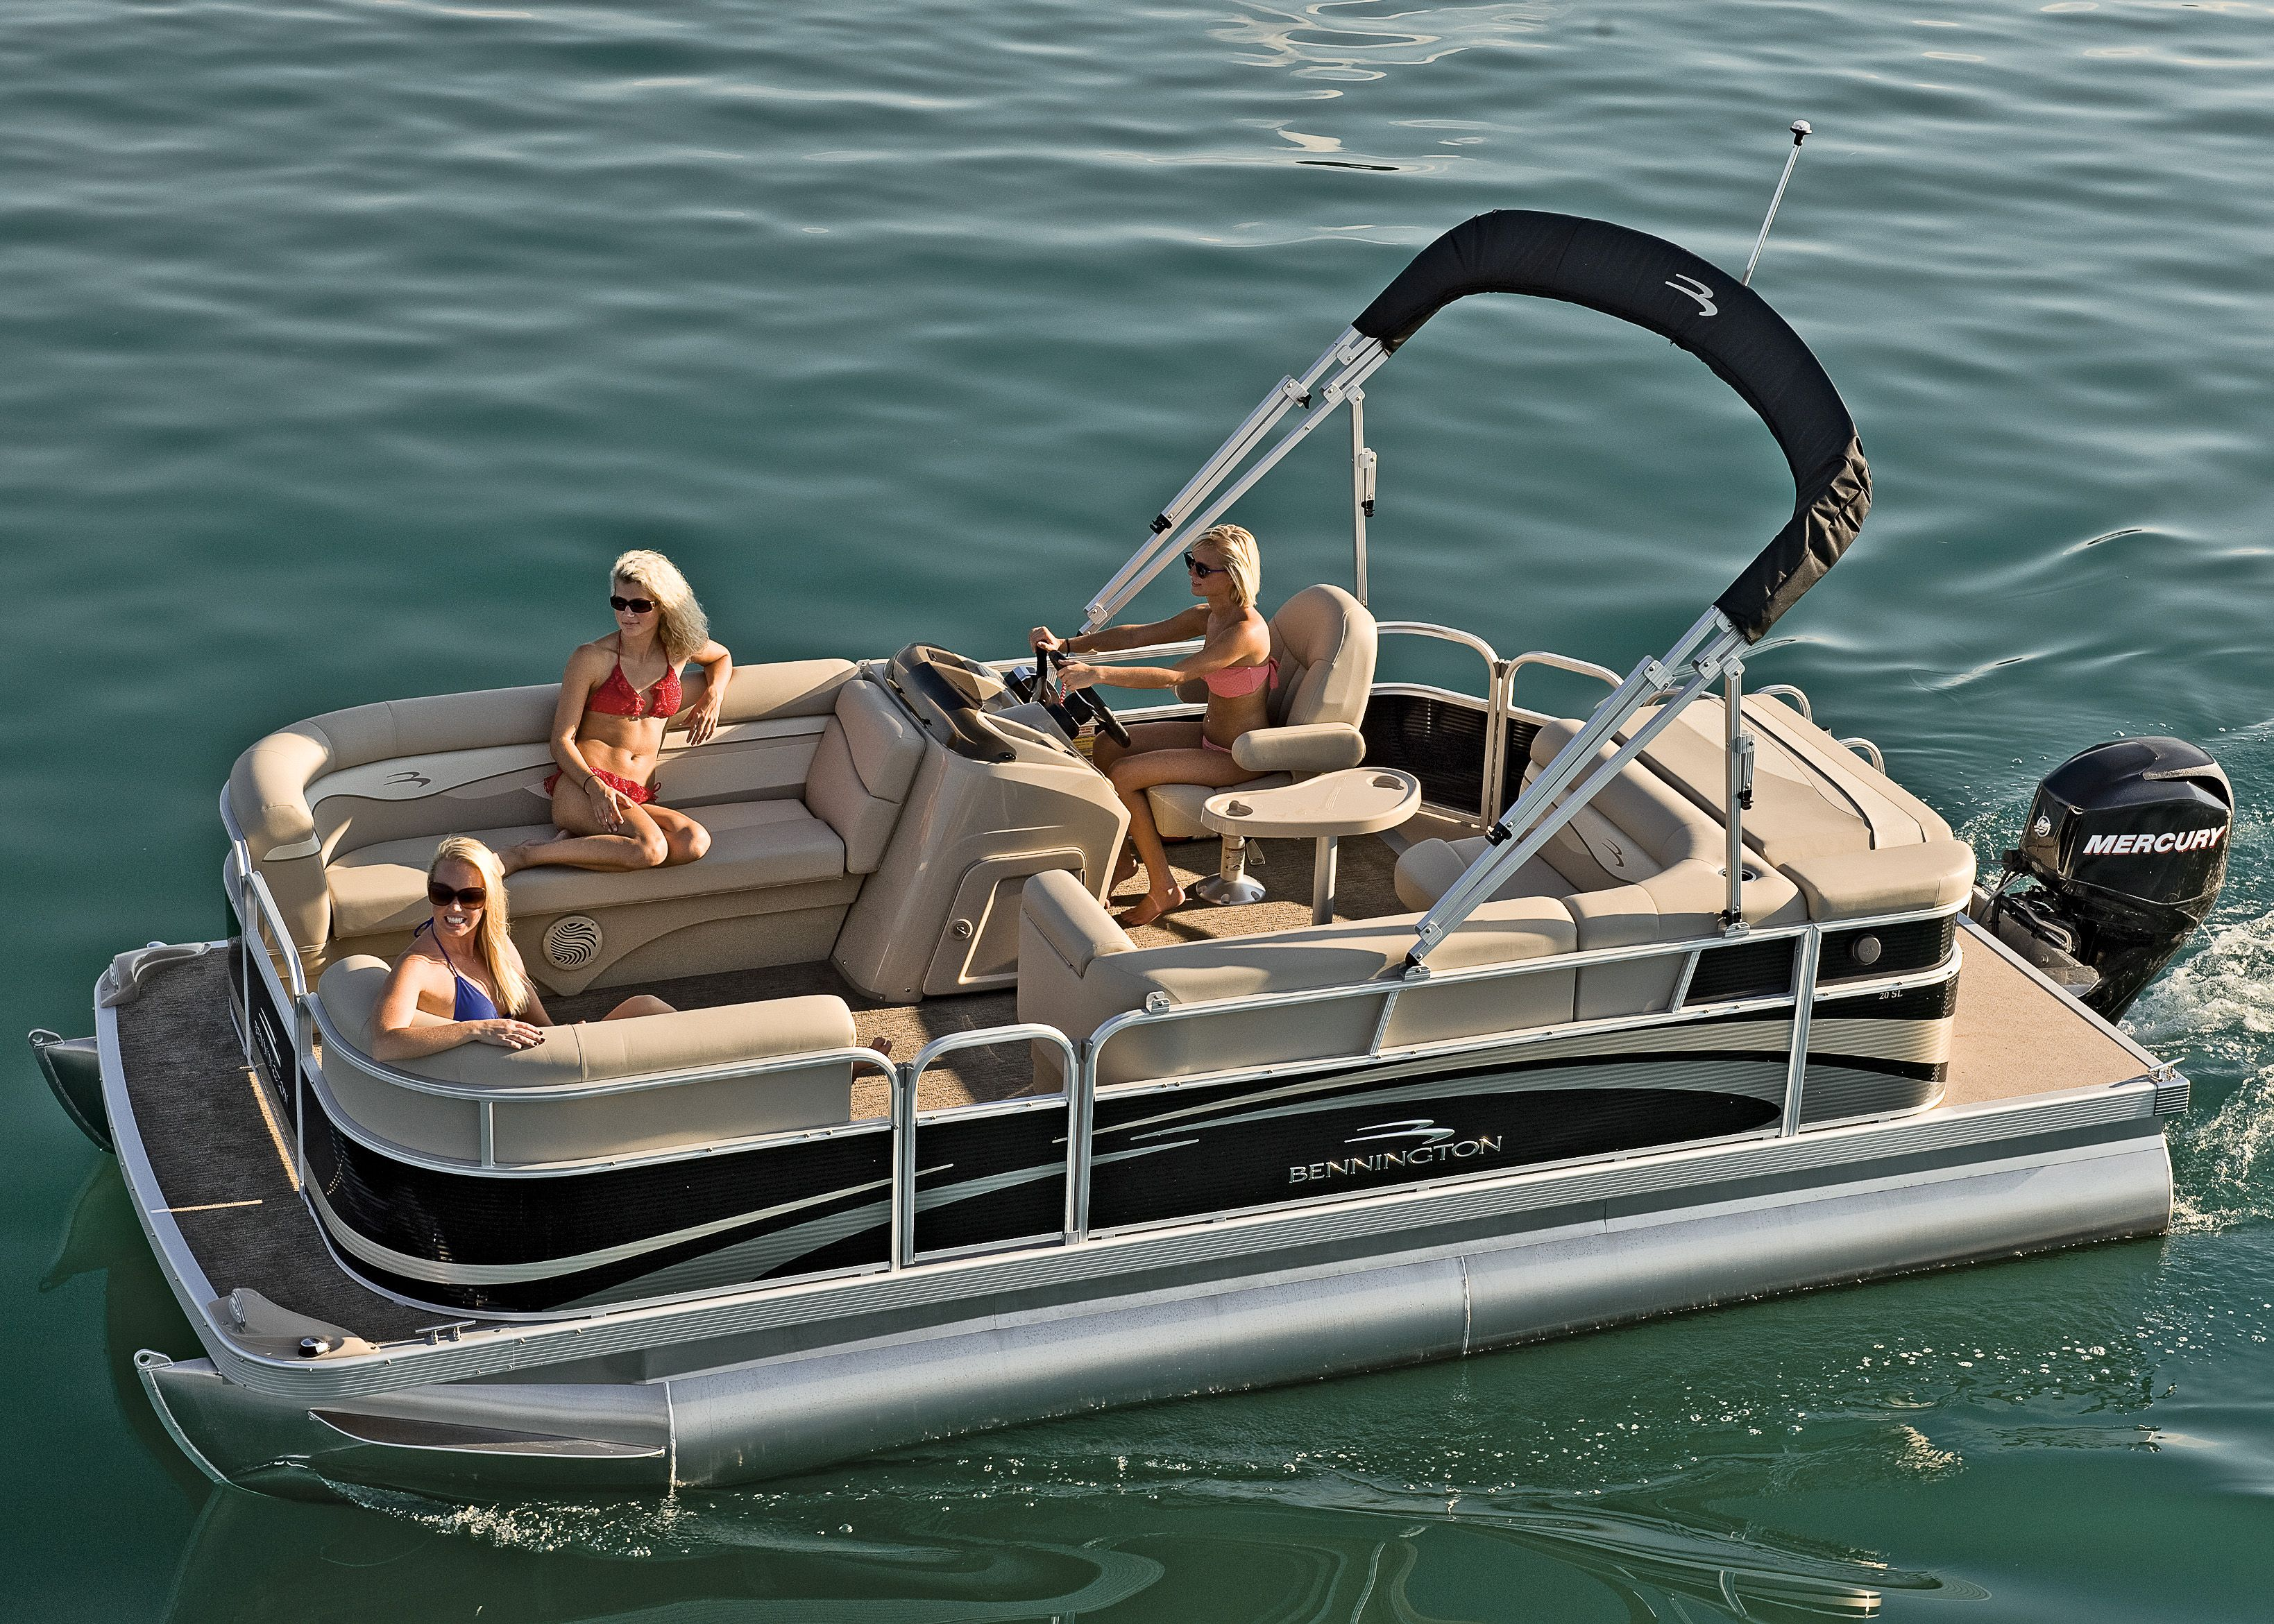 Pontoon boats with bathroom for sale - 2012 Bennington 20 Sl Pontoon Boat Great For A Summer Boat Outing Sunshine